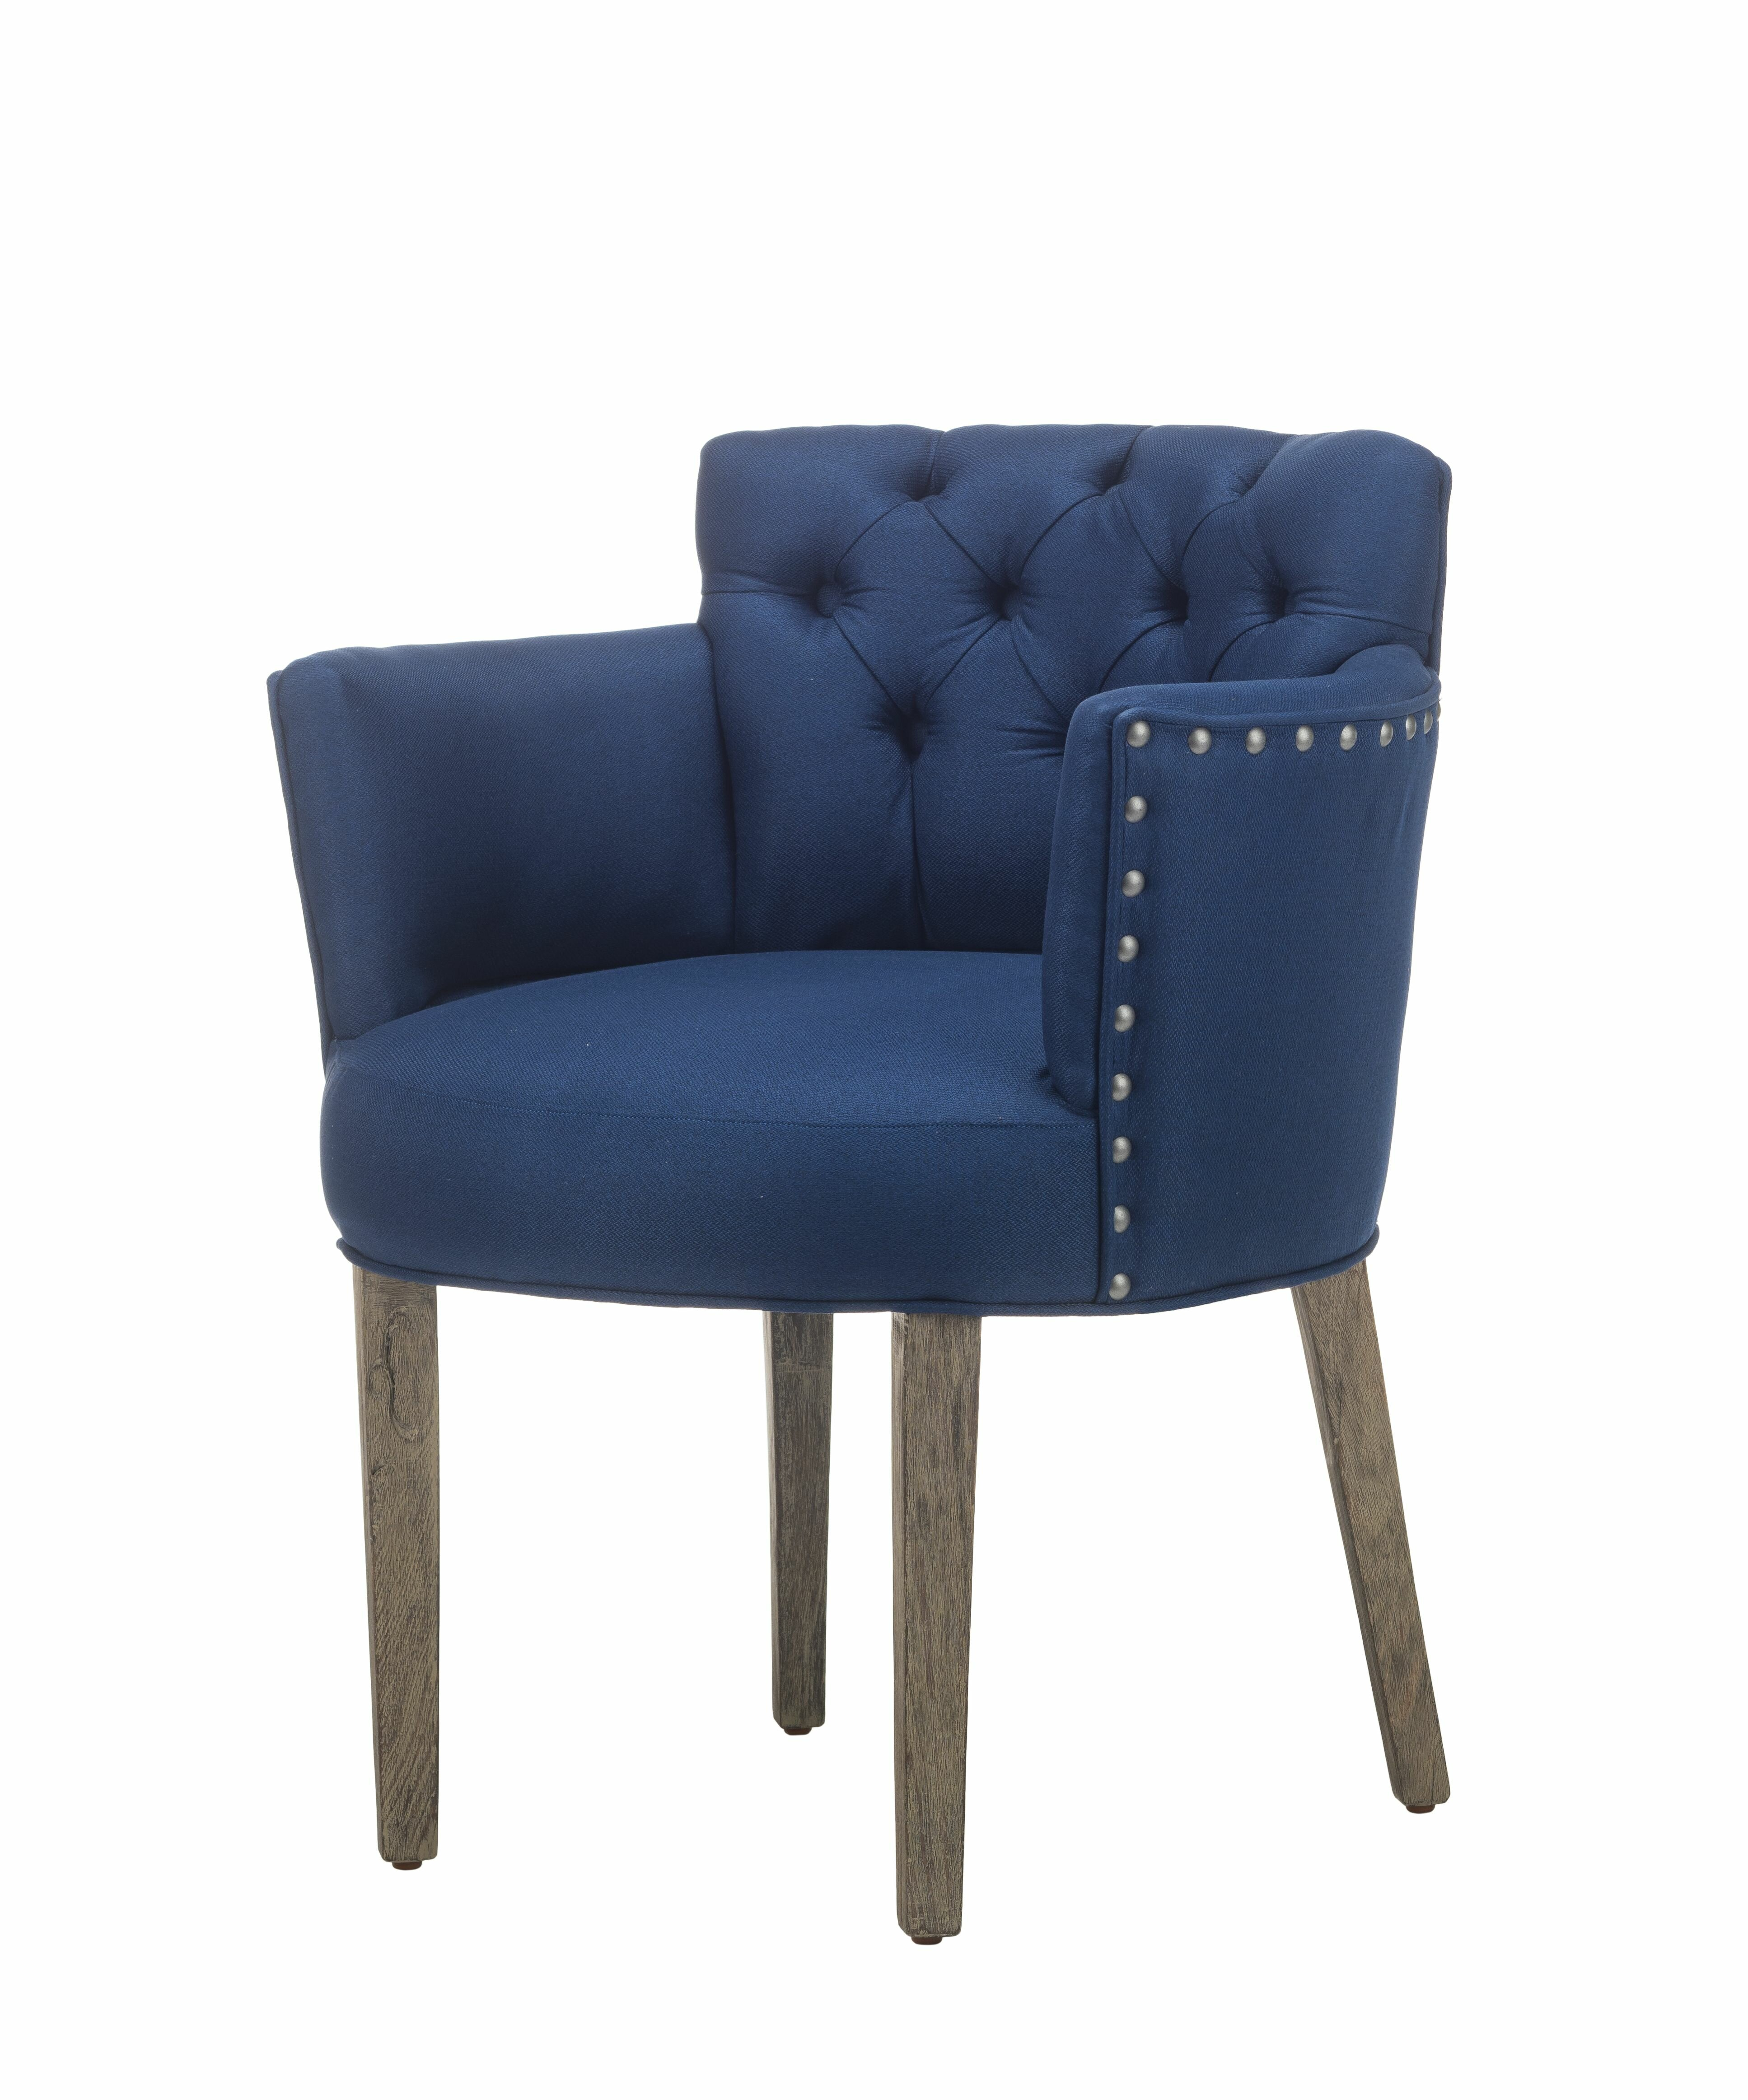 Gracie Oaks Toygar Tufted Upholstered Dining Chair In Navy Wayfair